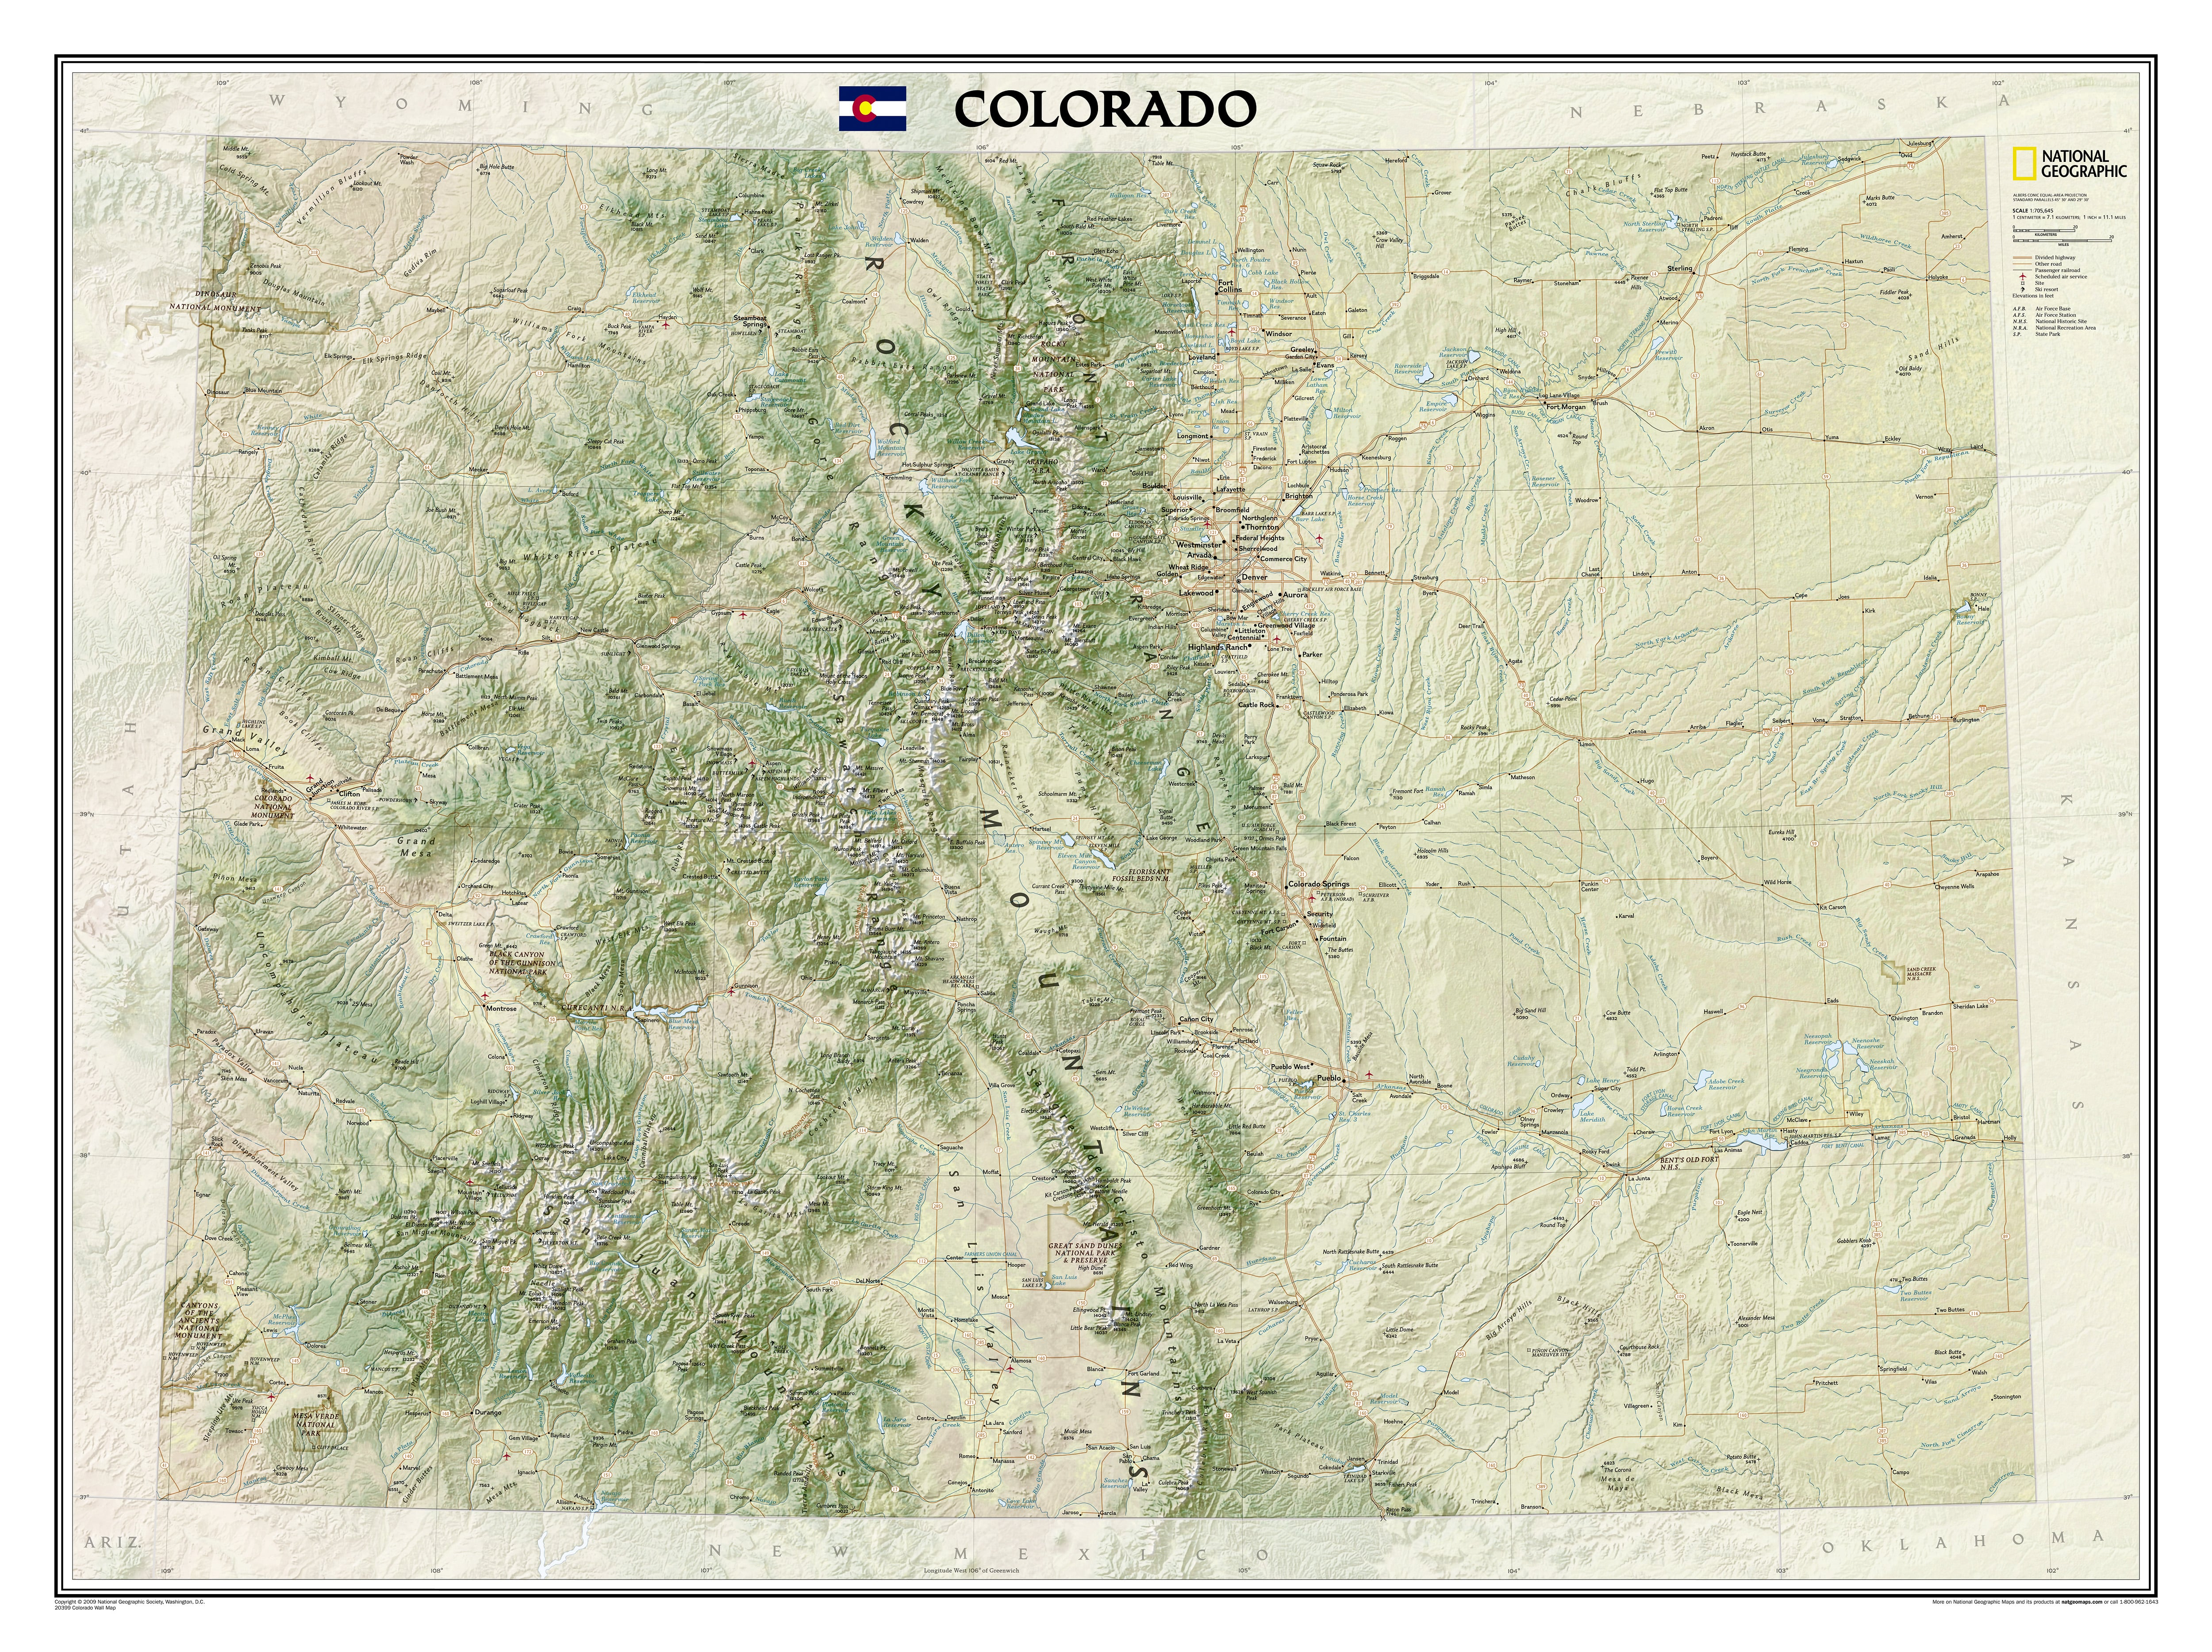 Colorado Wall Map 104 x 79cm - USA and US States Wall Maps ...